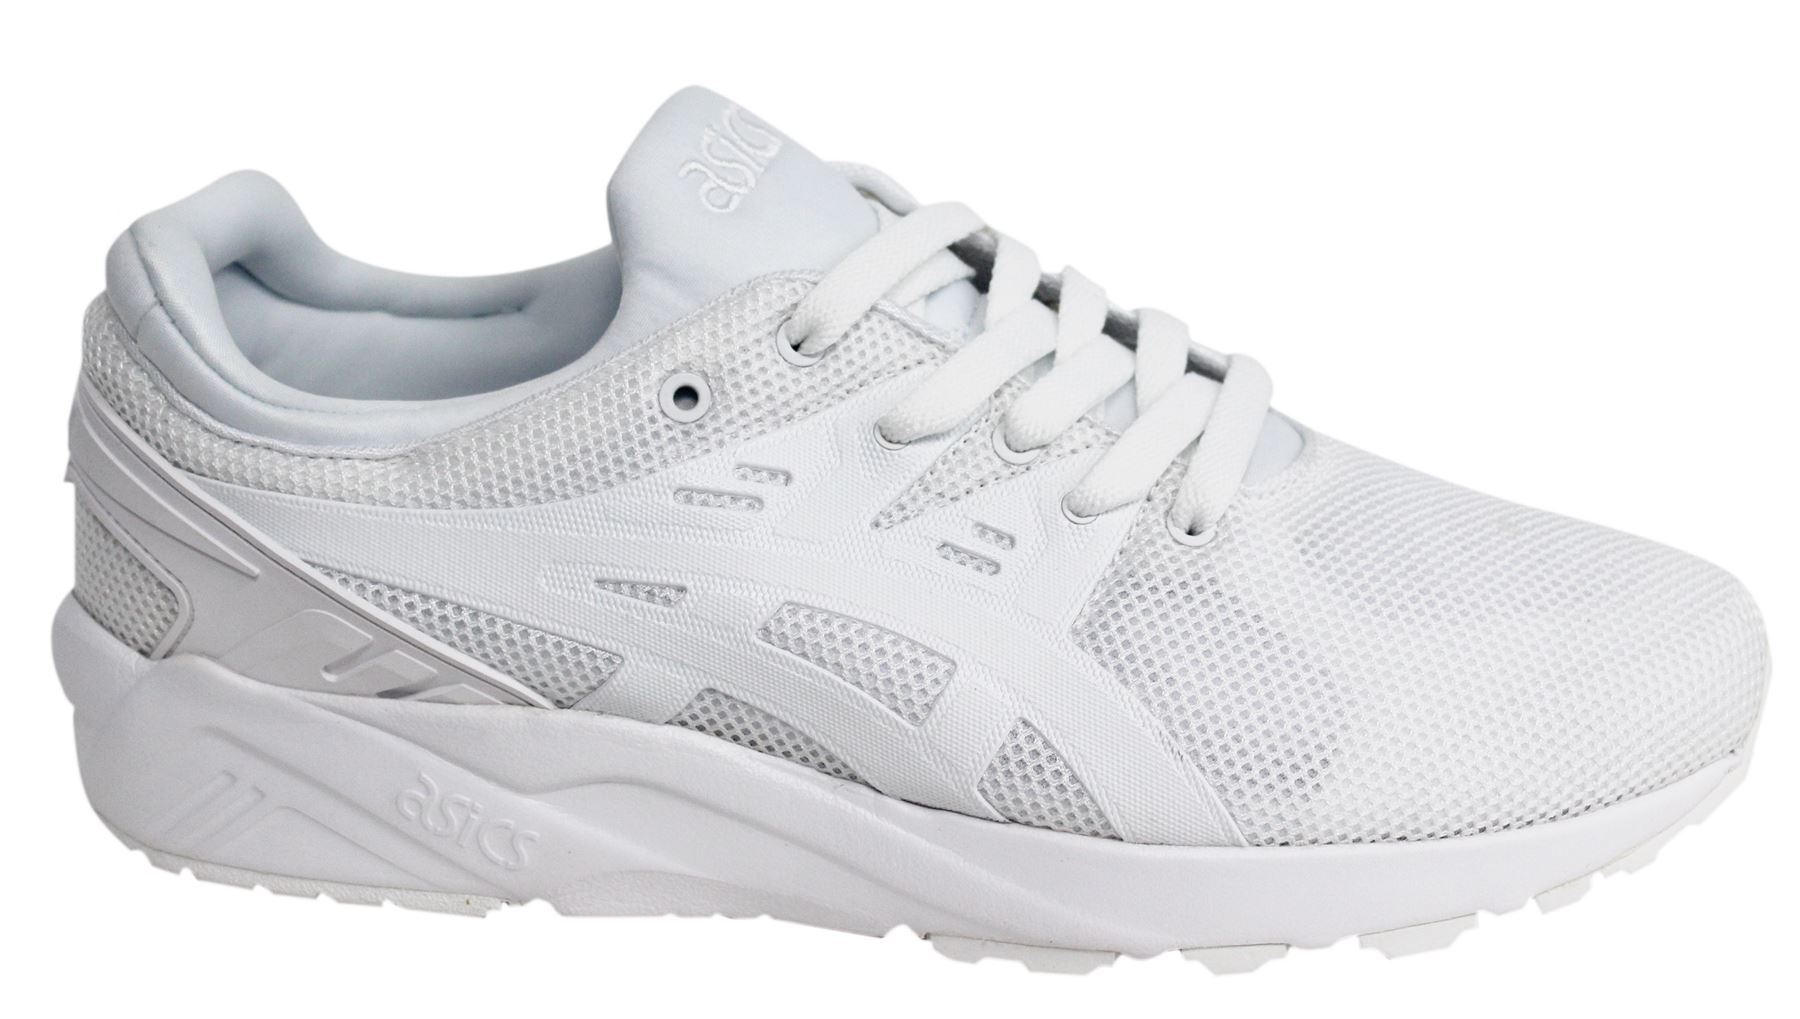 Details zu Asics Gel Kayano Evo White Textile Lace Up Running Mens Trainers HN6A0 0101 B99B